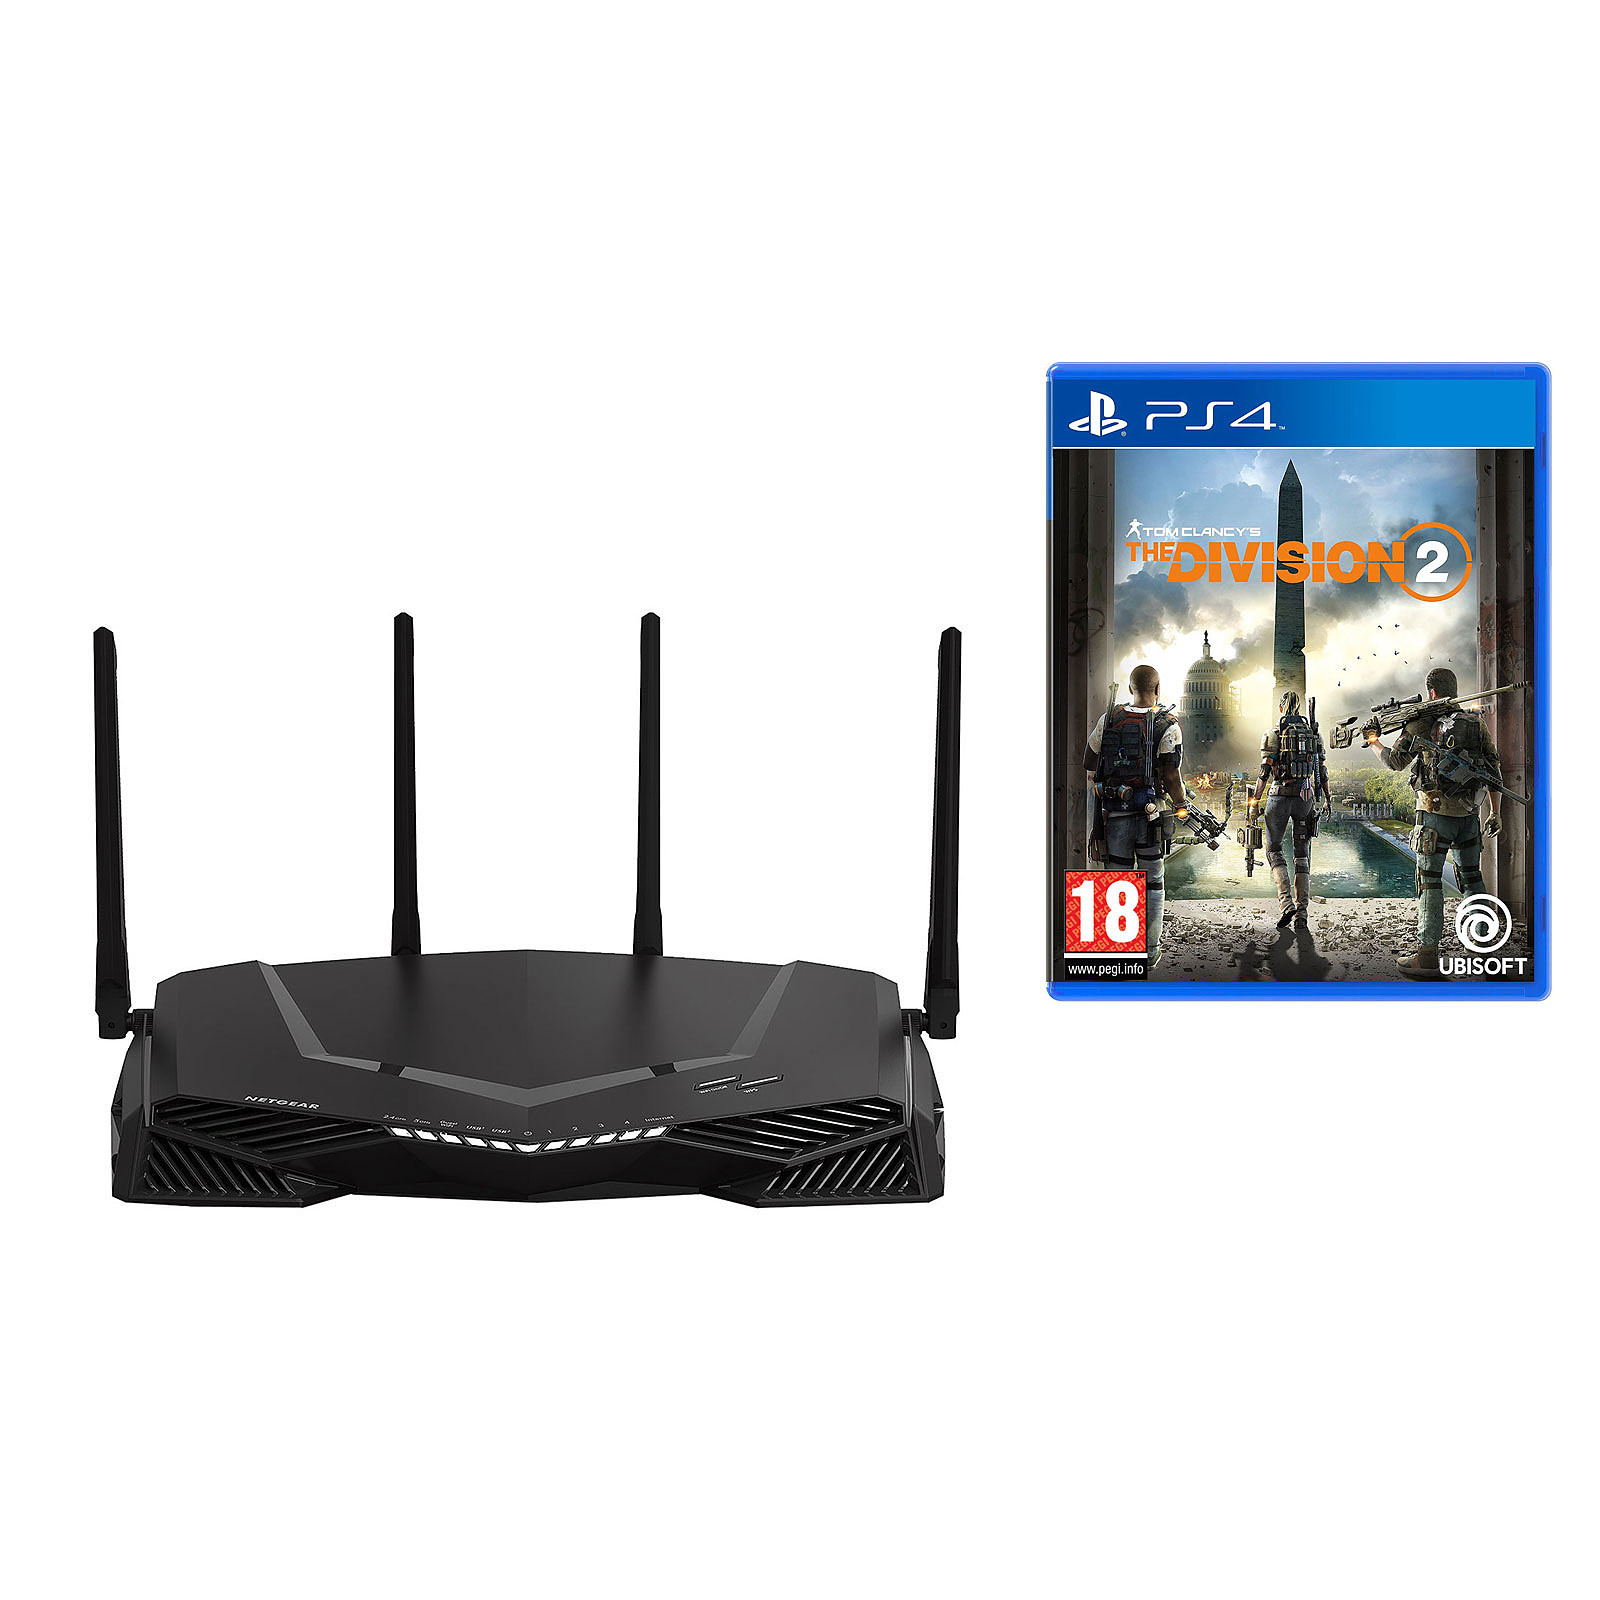 Netgear Nighthawk Pro Gaming XR500 + The Division 2 (PS4)